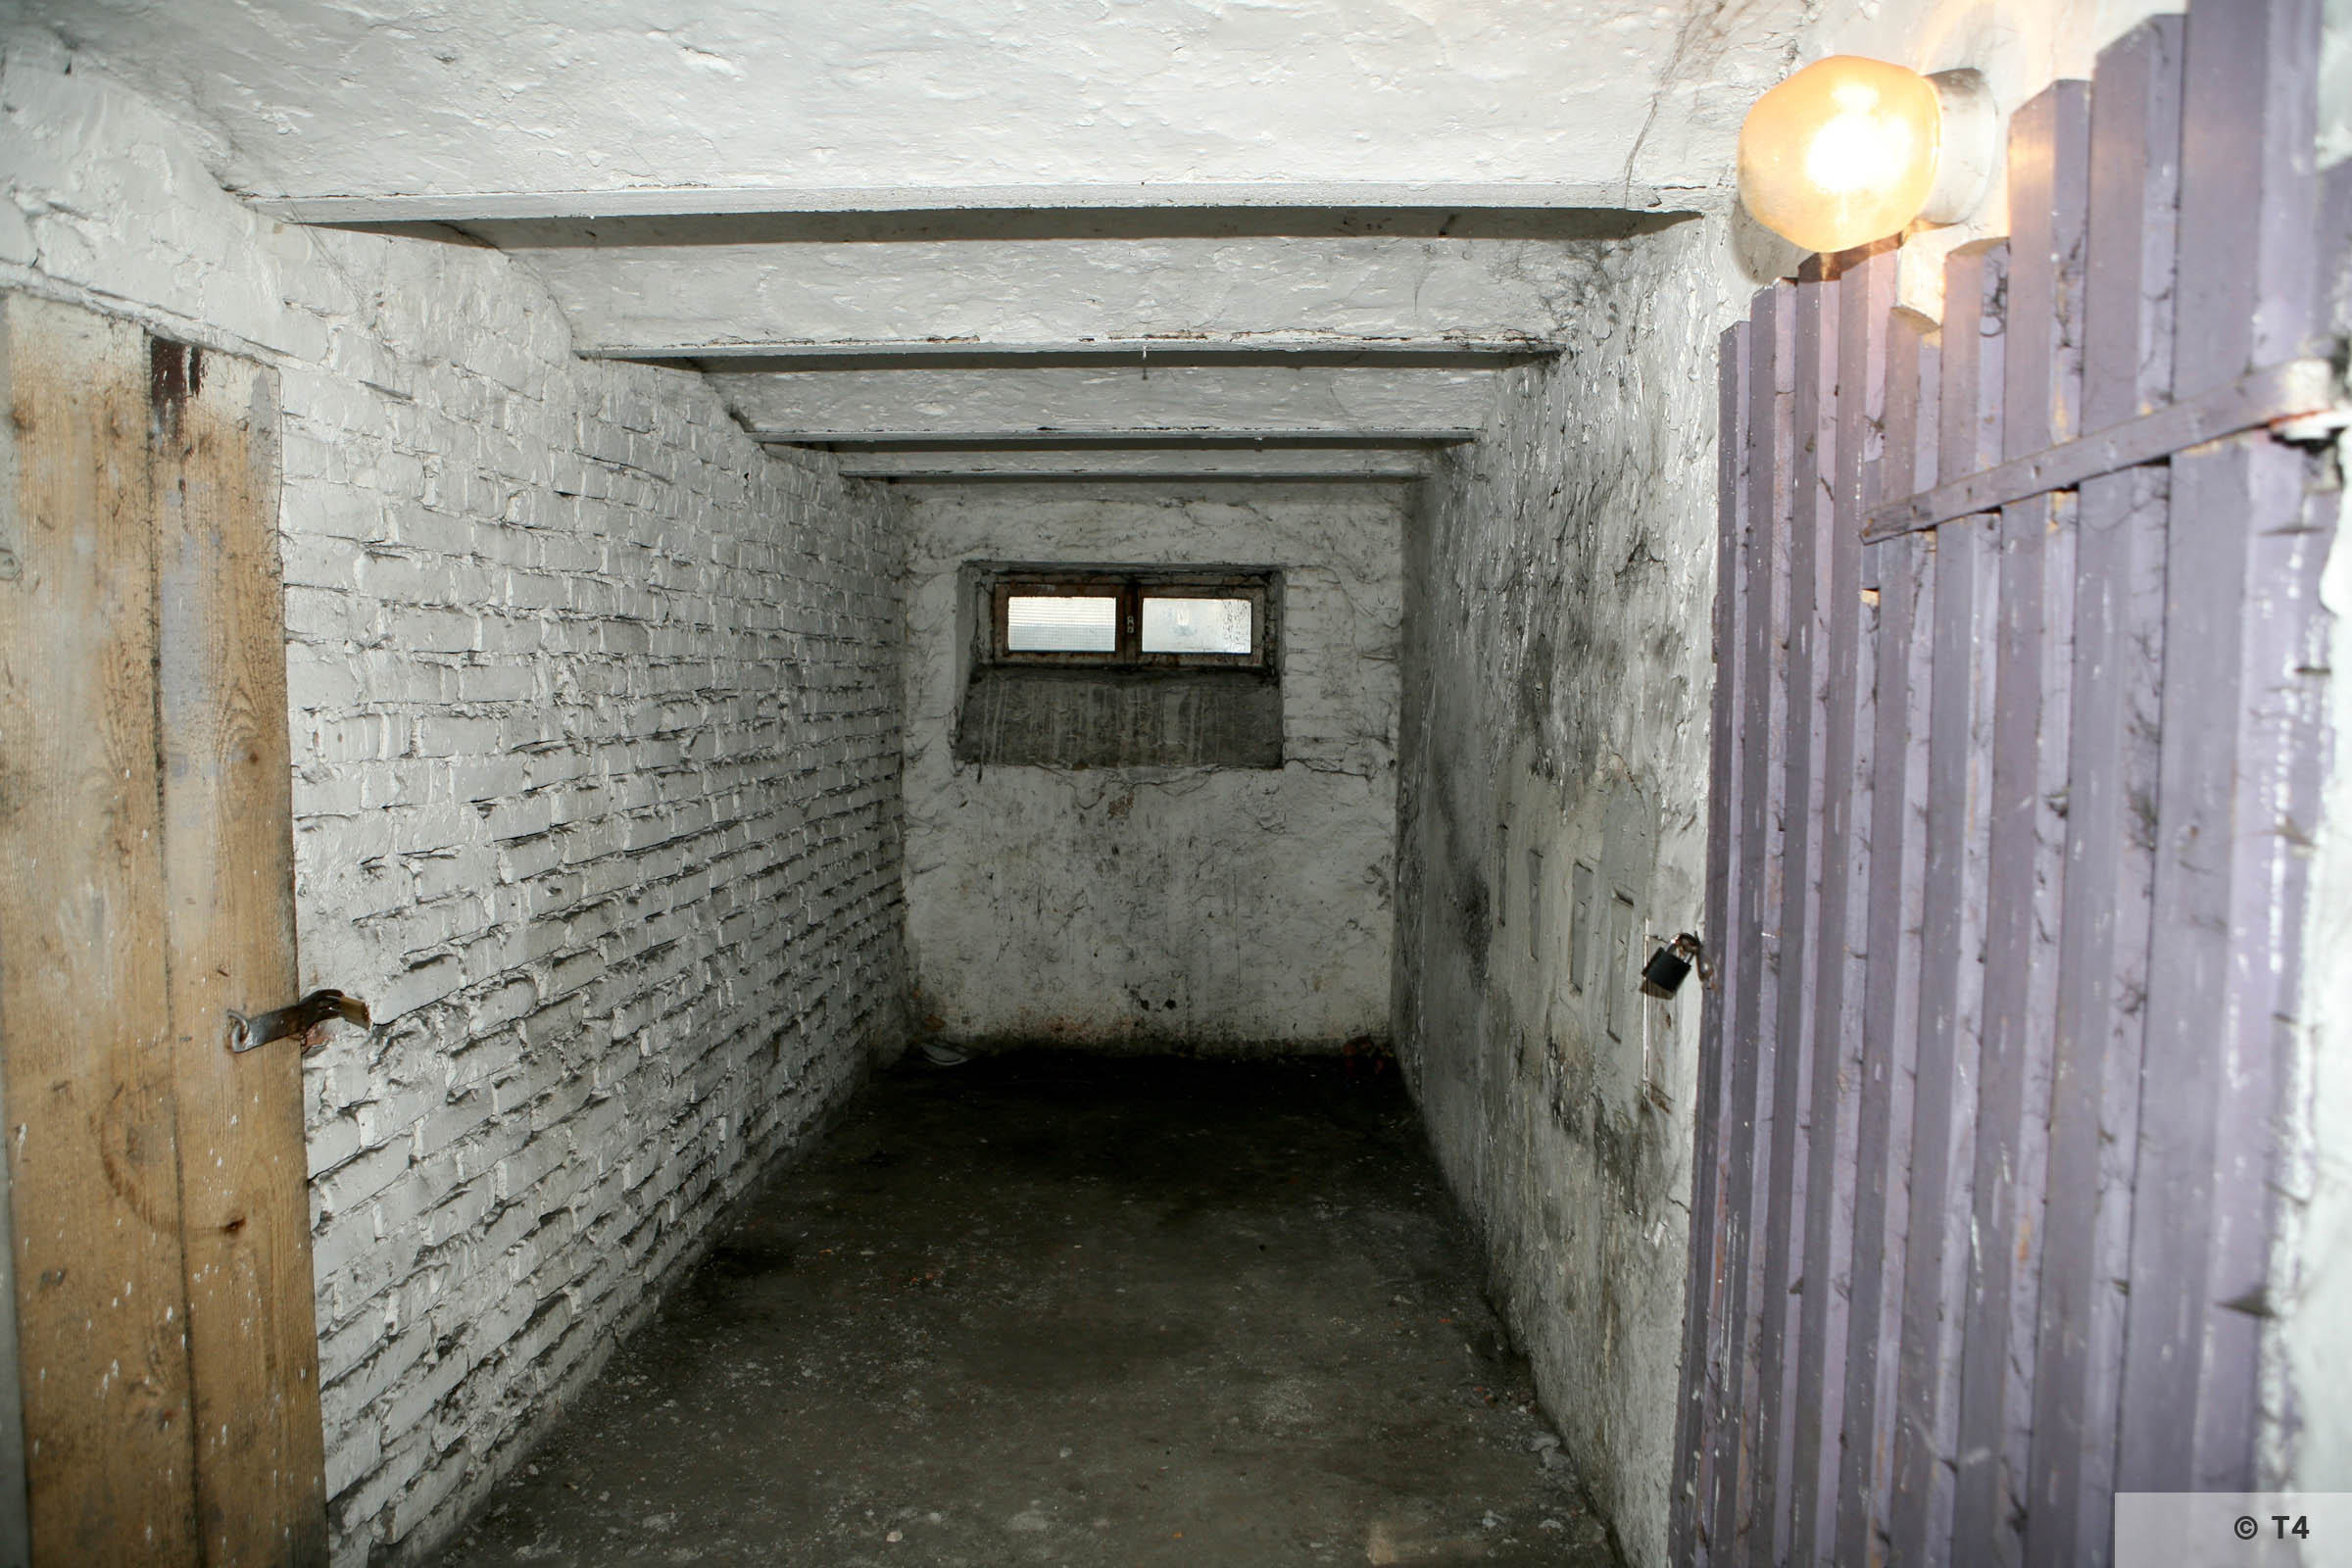 Former cells in the basement of the amdinistration building and prisoner accomodation. 2008 T4 4572